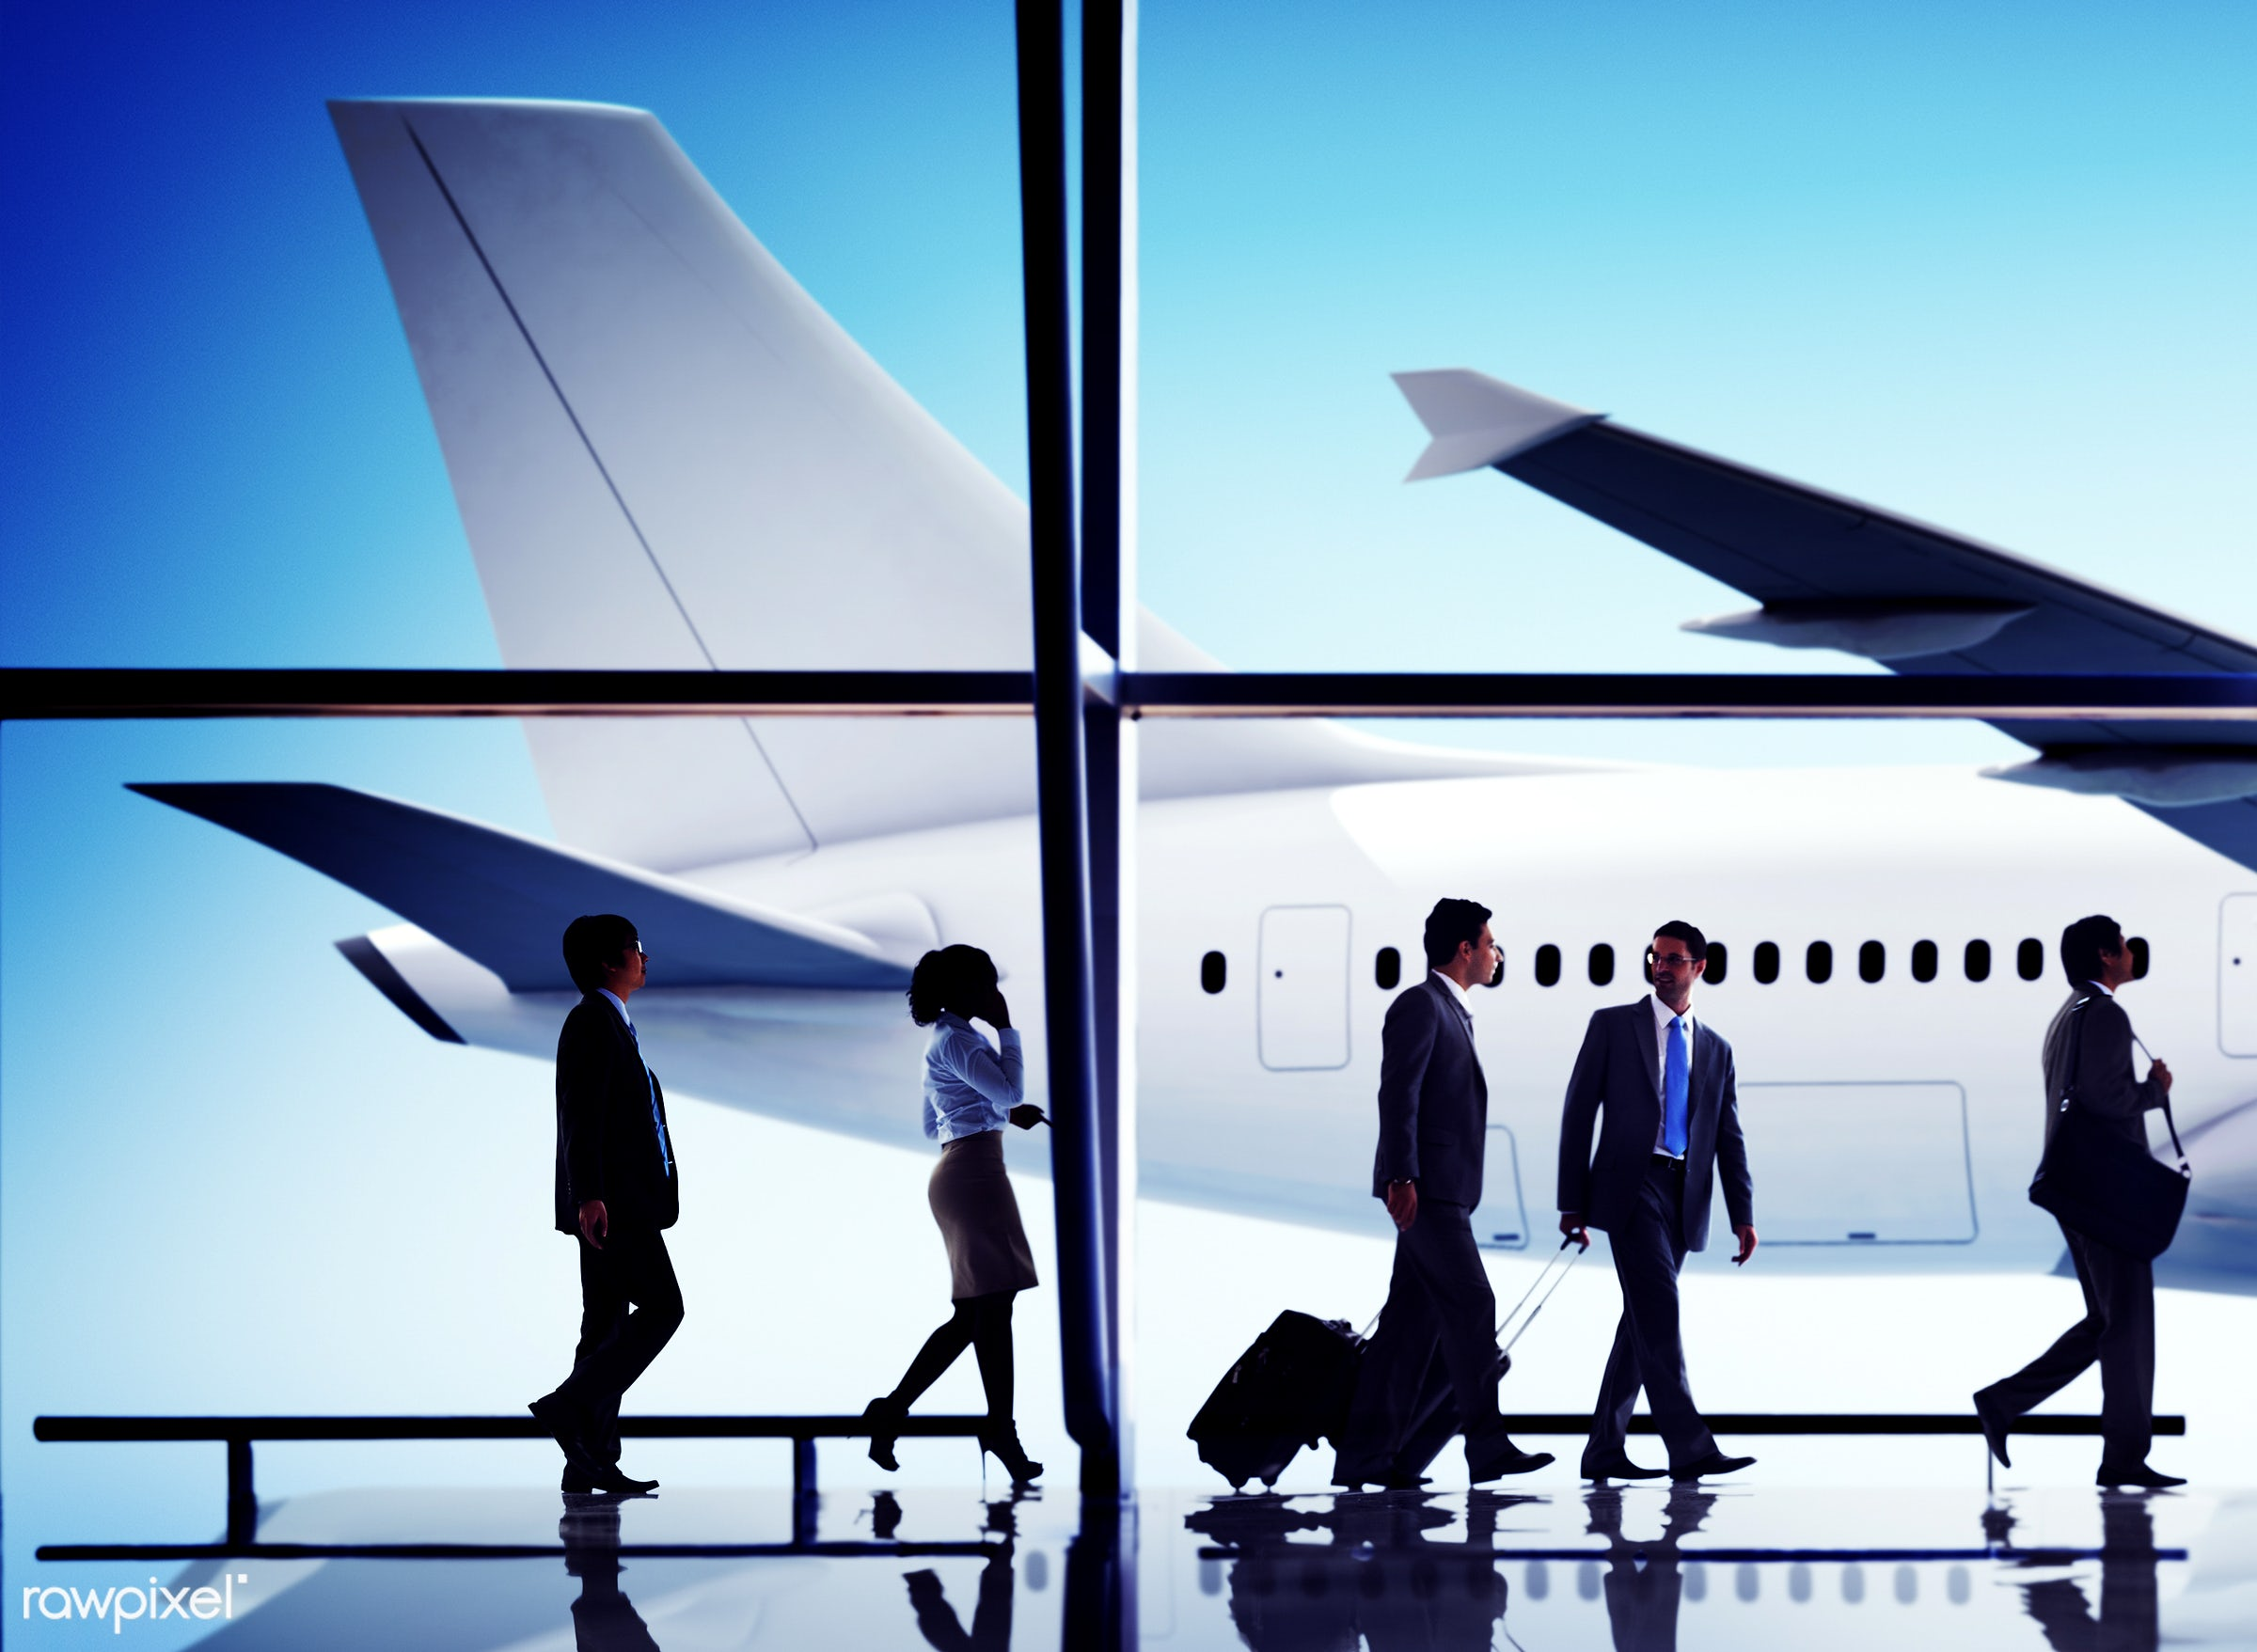 architecture, 3d, african descent, aircraft, airplane, airport, asian ethnicity, baggage, business, business people,...